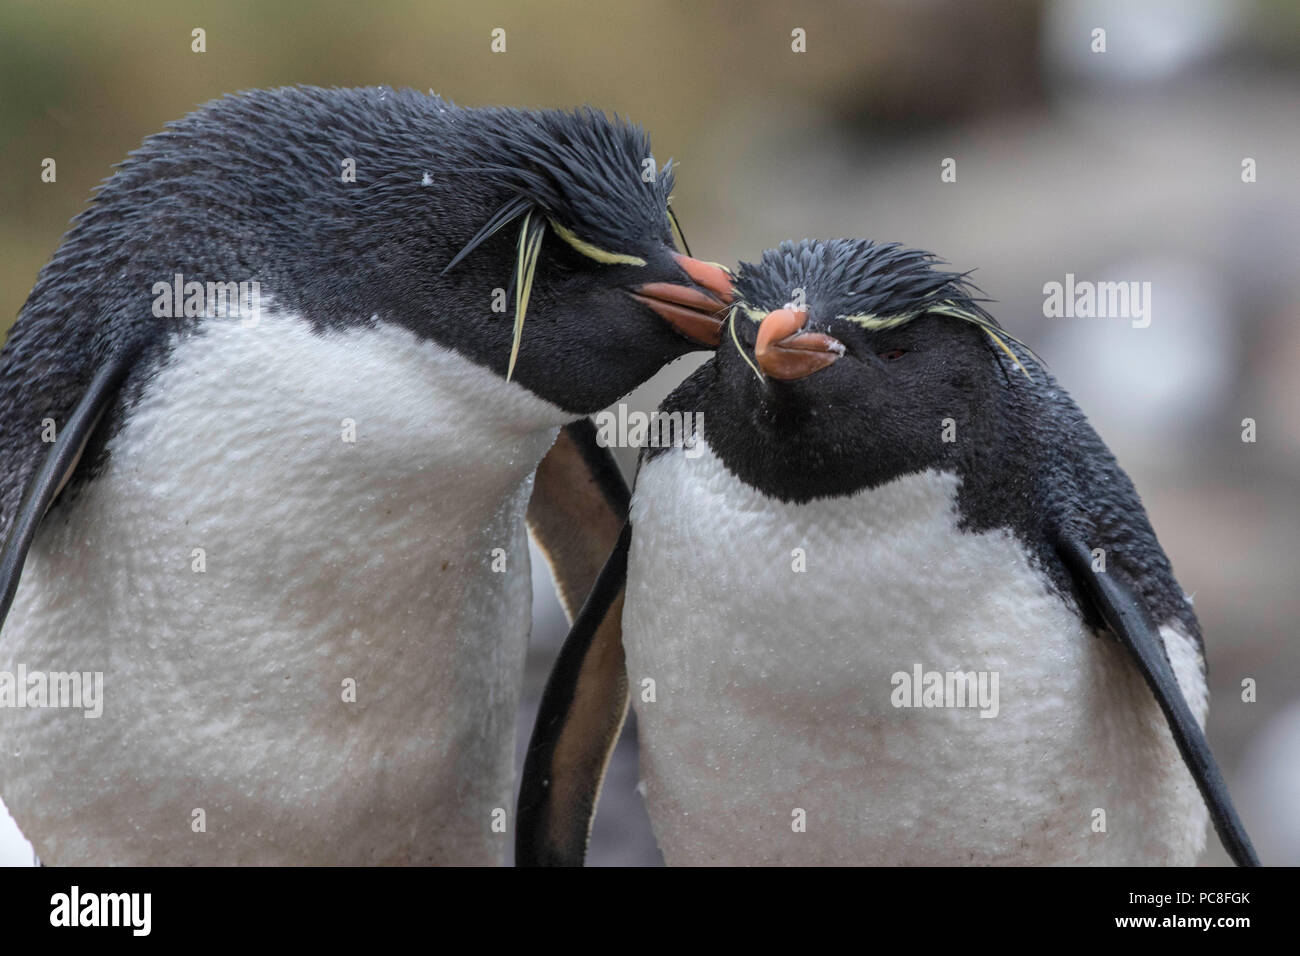 Pair of rock hopper penguins nesting at a rookery in the West Falkland Islands - Stock Image